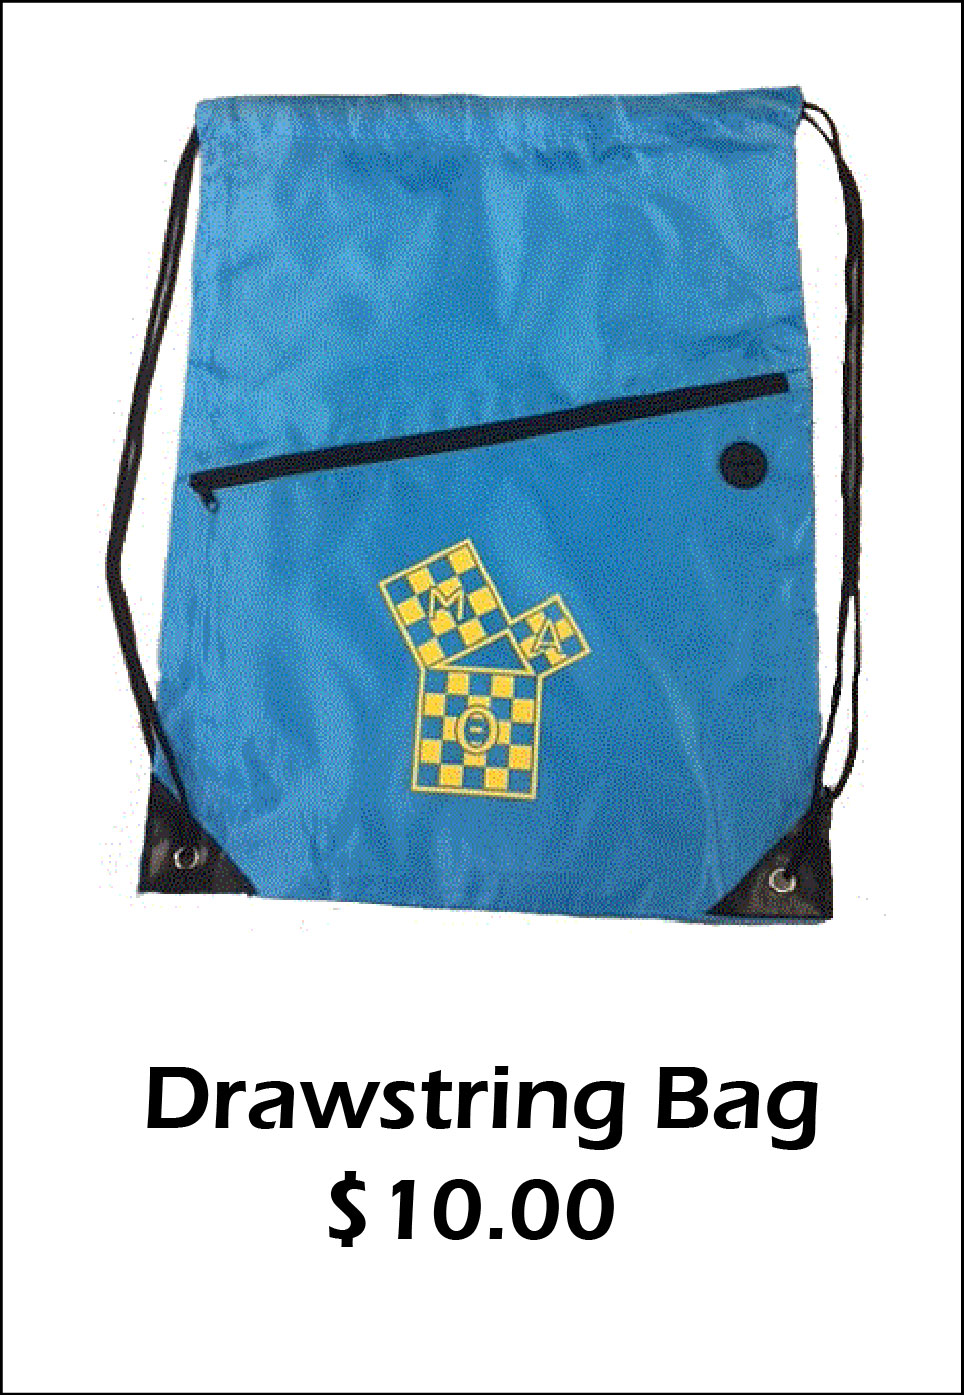 MAT Drawstring Bag - $10